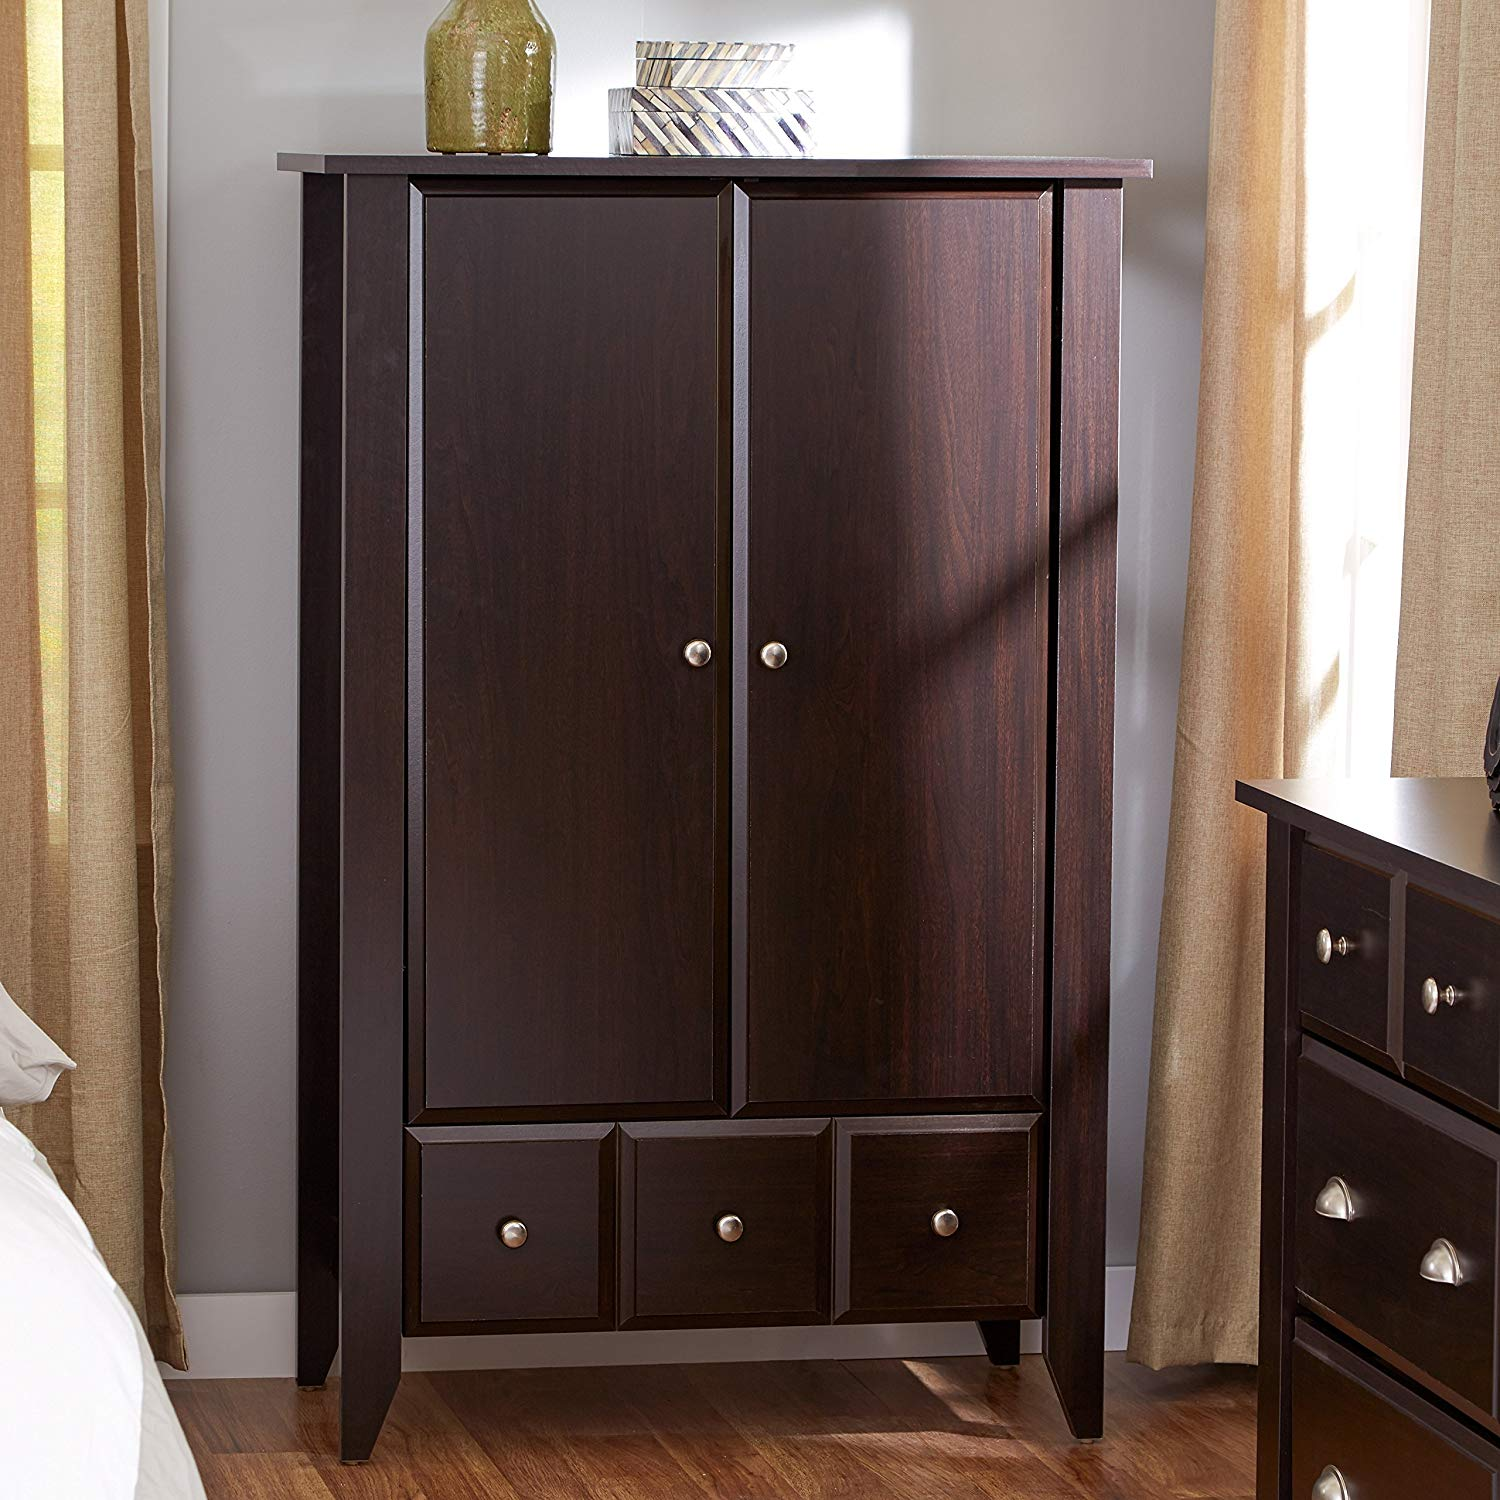 Wardrobe Closet amazon.com: wardrobe closet armoire - modern contemporary dresser cabinet  with drawers for LSJIKDR